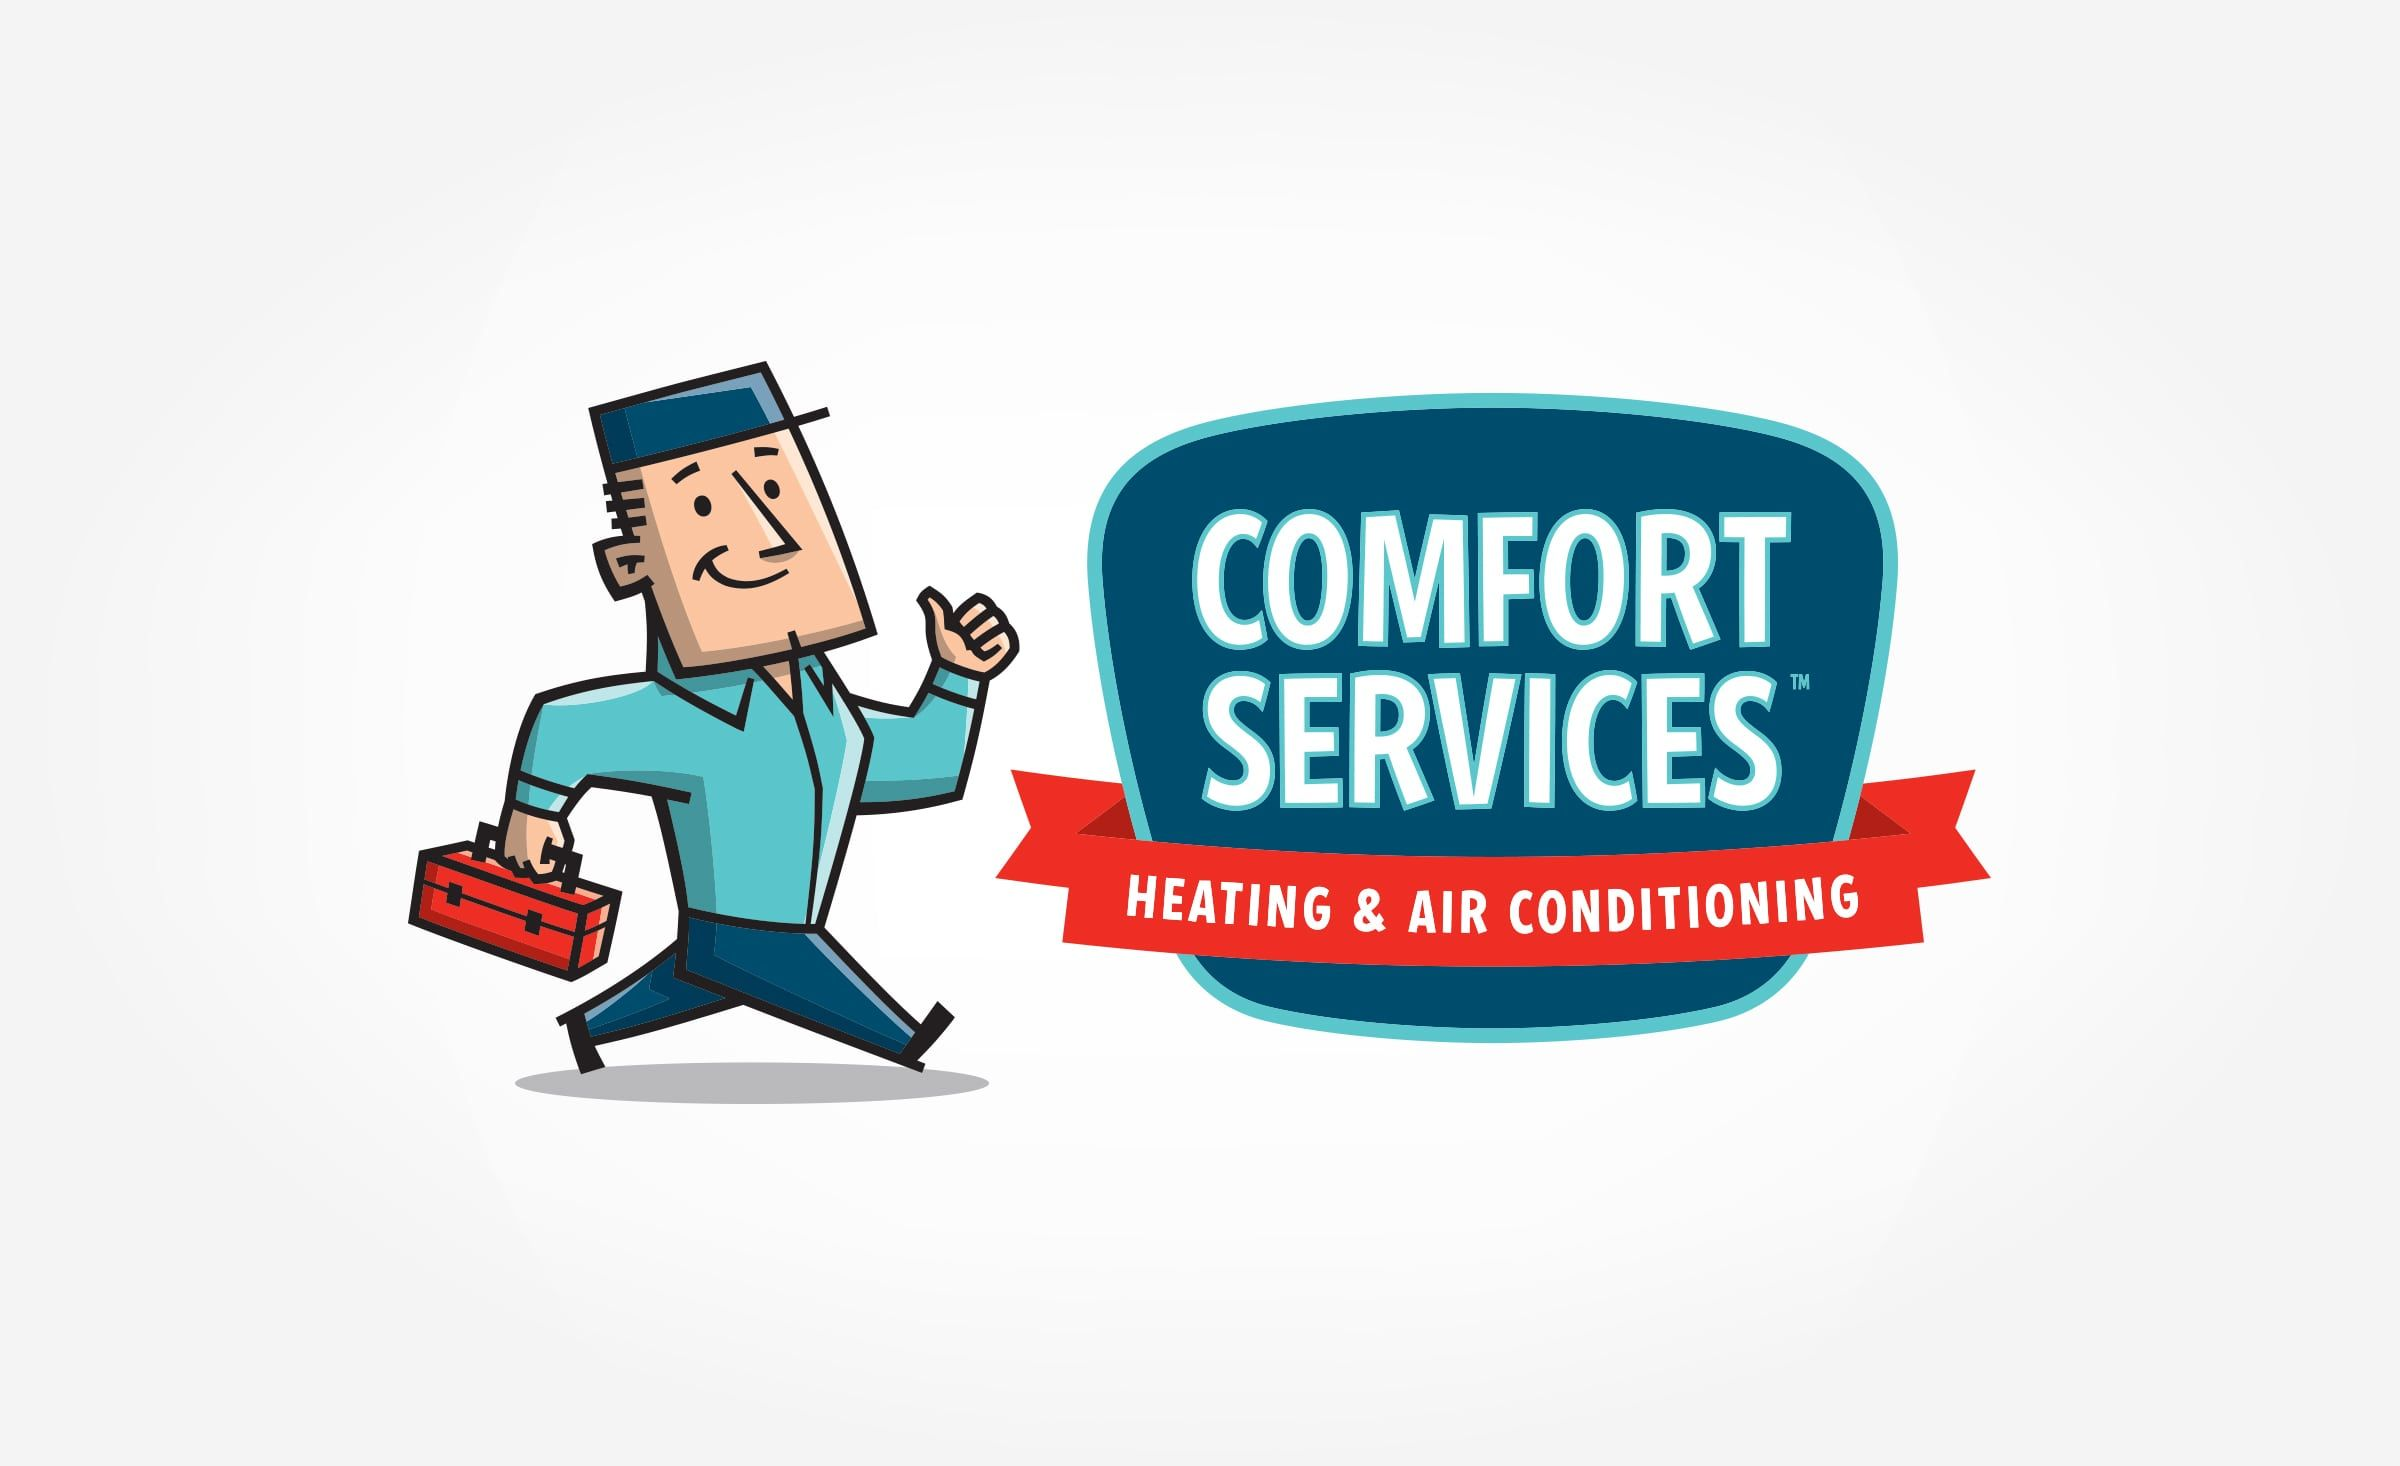 Comfort Services Heating & Air Conditioning KickCharge